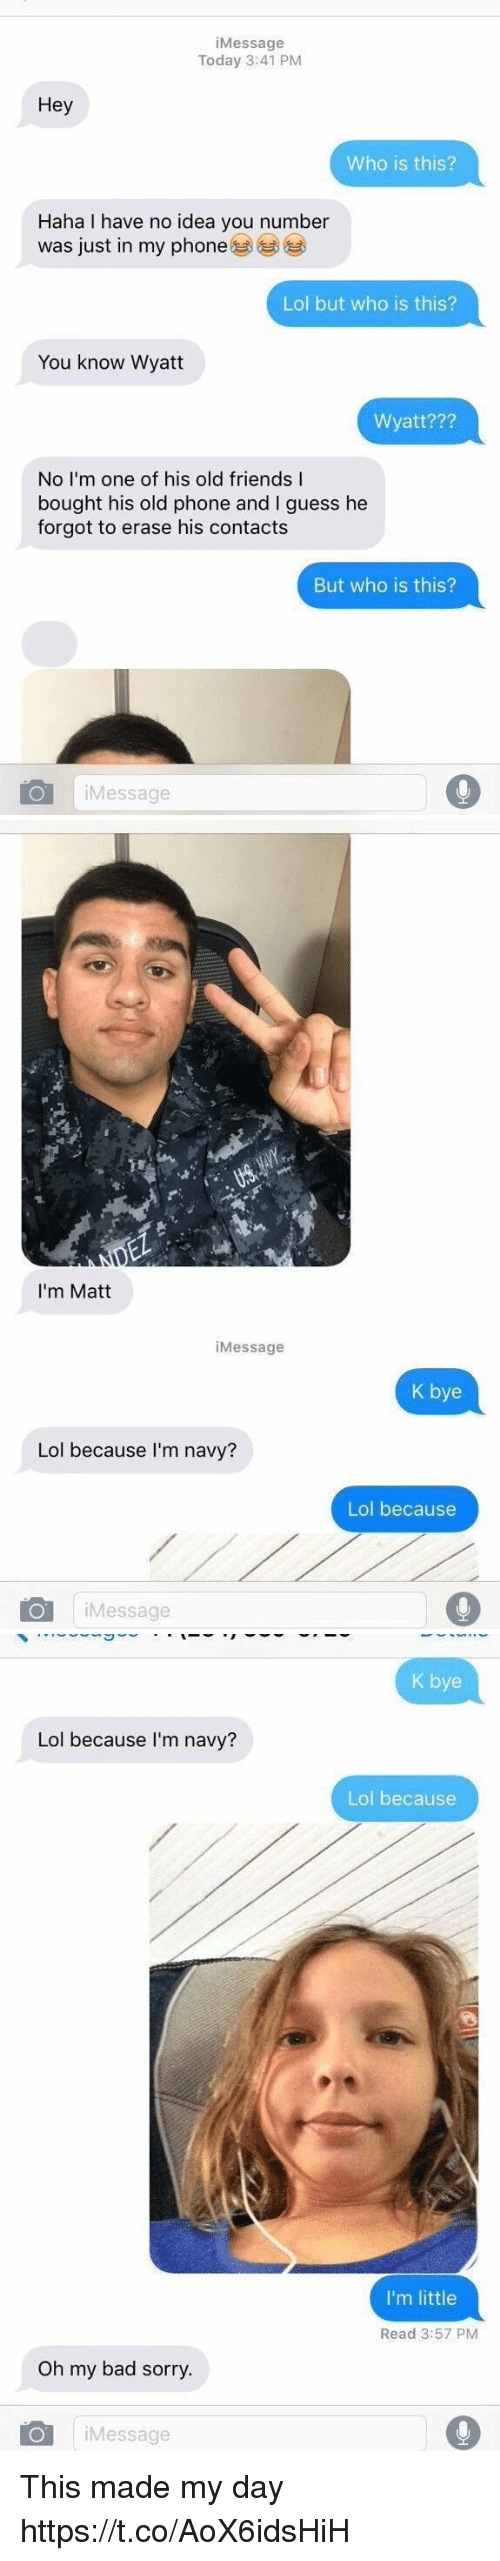 Bad, Friends, and Lol: iMessage  Today 3:41 PM  Hey  Who is this?  Haha I have no idea you number  was just in my phone  Lol but who is this?  You know Wyatt  Wyatt???  No I'm one of his old friends I  bought his old phone and I guess he  forgot to erase his contacts  But who is this?  Message   I'm Matt  iMessage  K bye  Lol because I'm navy?  Lol because  iMessage   K bye  Lol because I'm navy?  Lol because  I'm little  Read 3:57 PM  Oh my bad sorry.  iMessage This made my day https://t.co/AoX6idsHiH